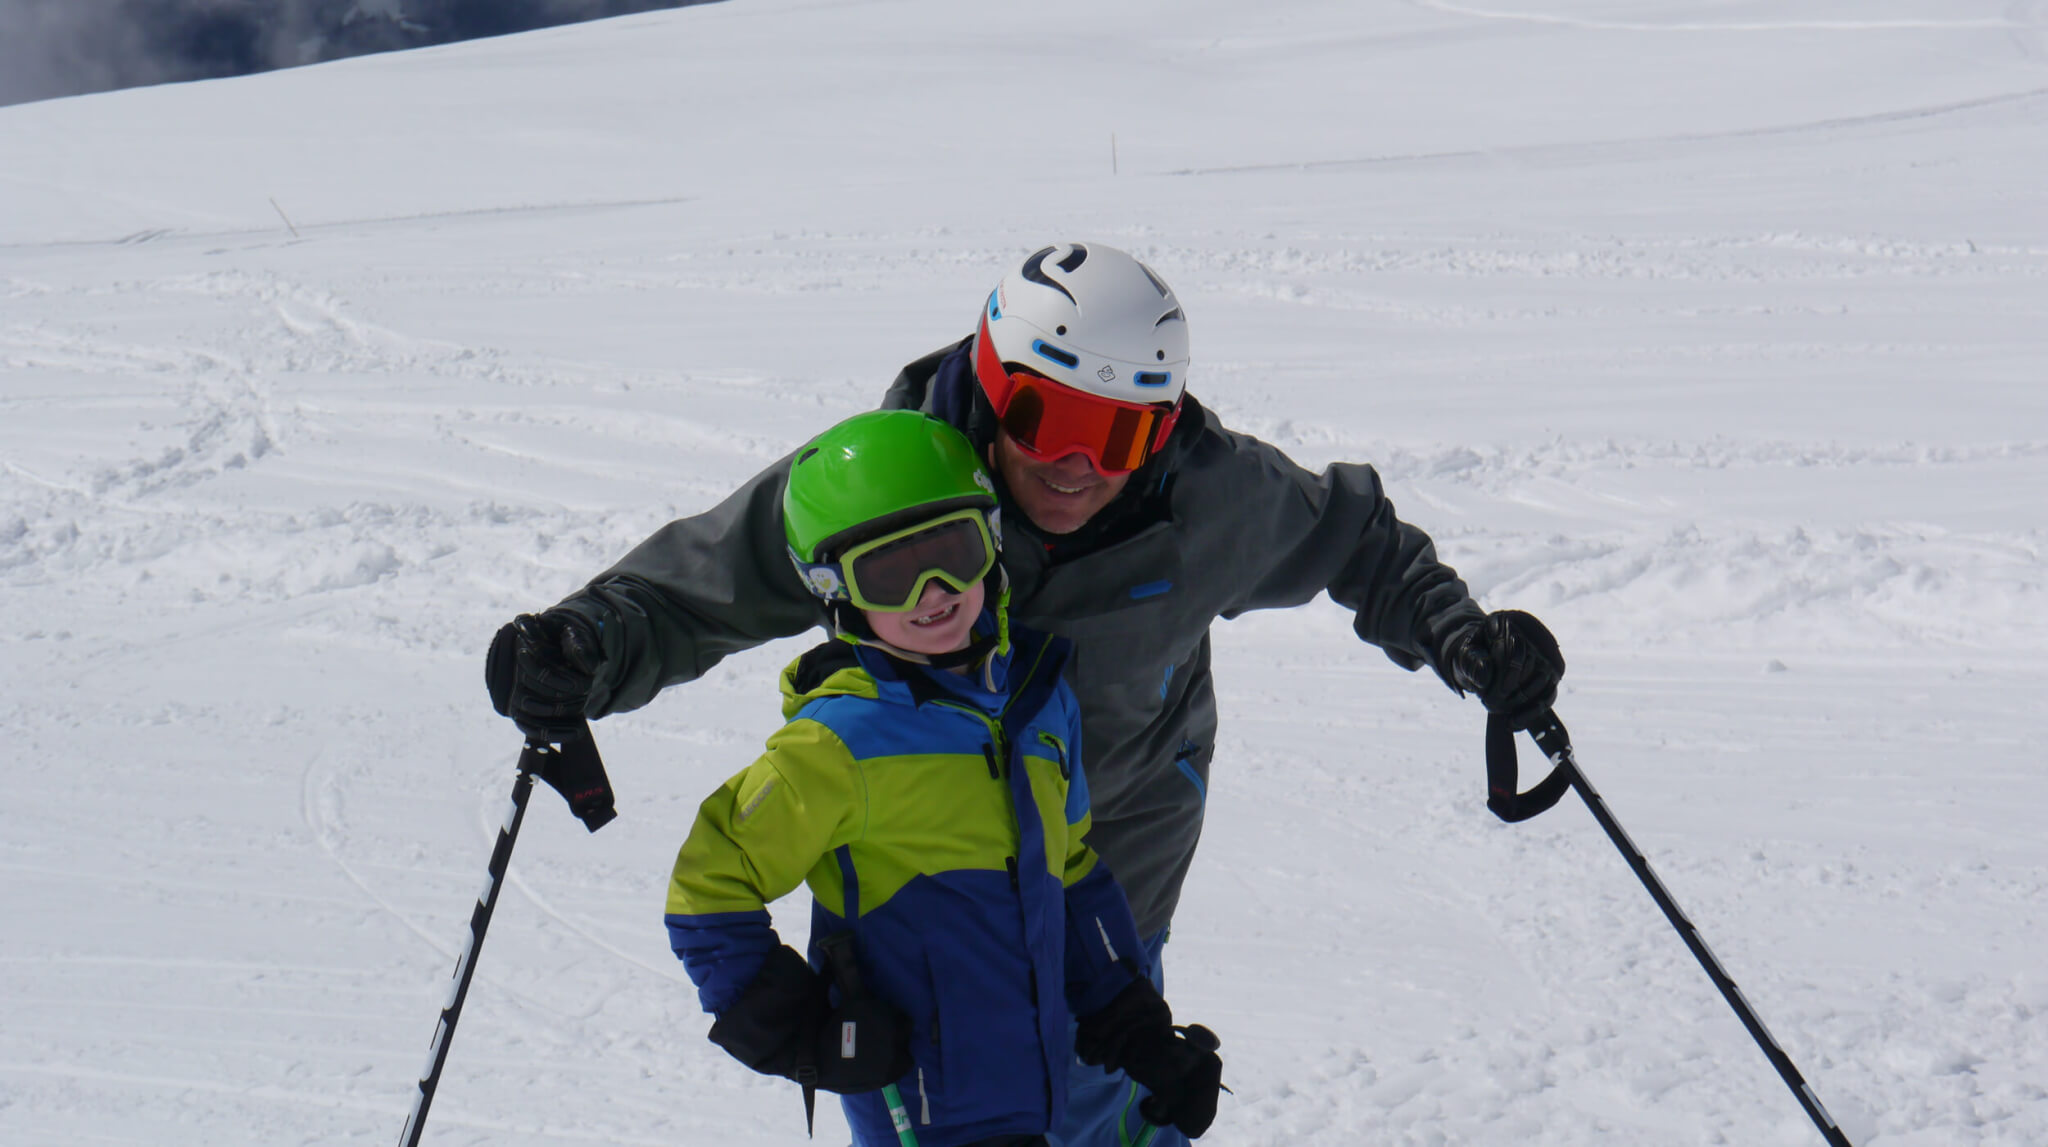 Beginner ski lessons in Verbier Switzerland